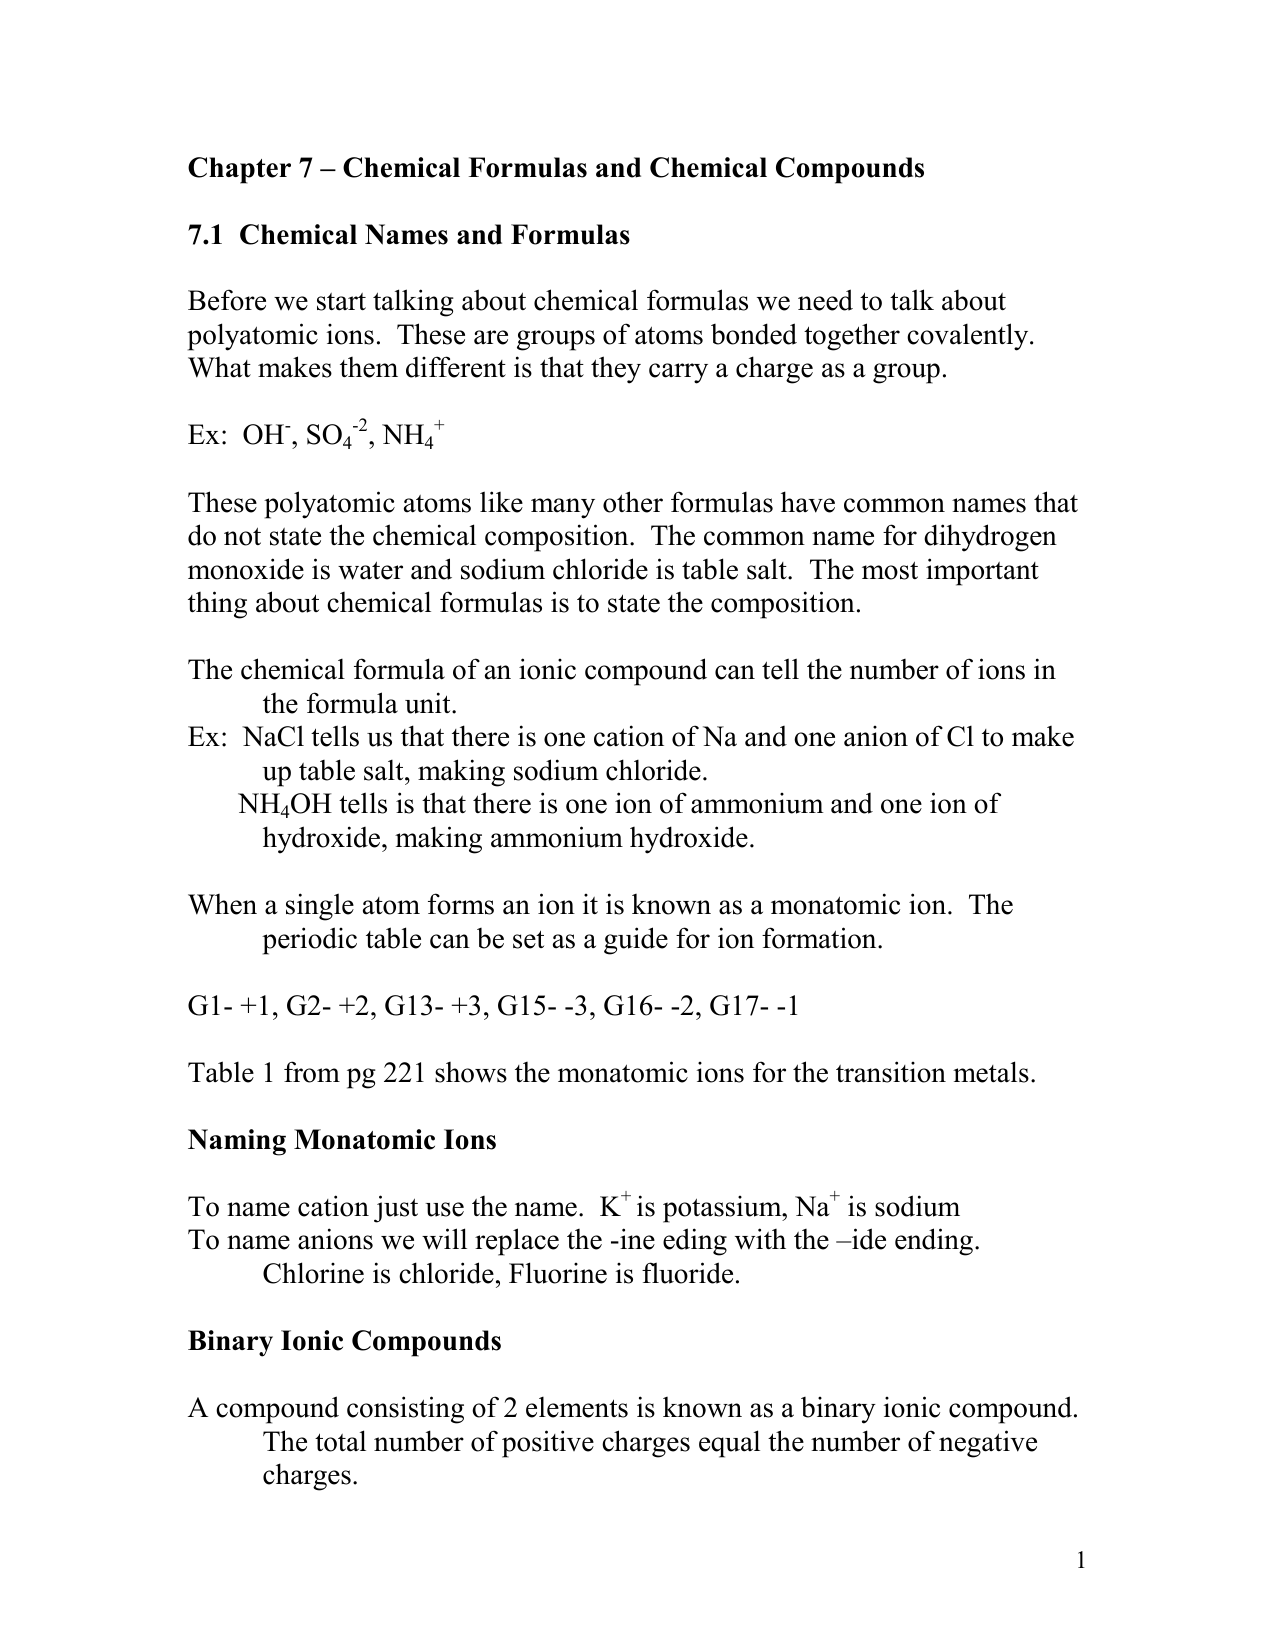 Chapter 7 Chemical Formulas And Chemical